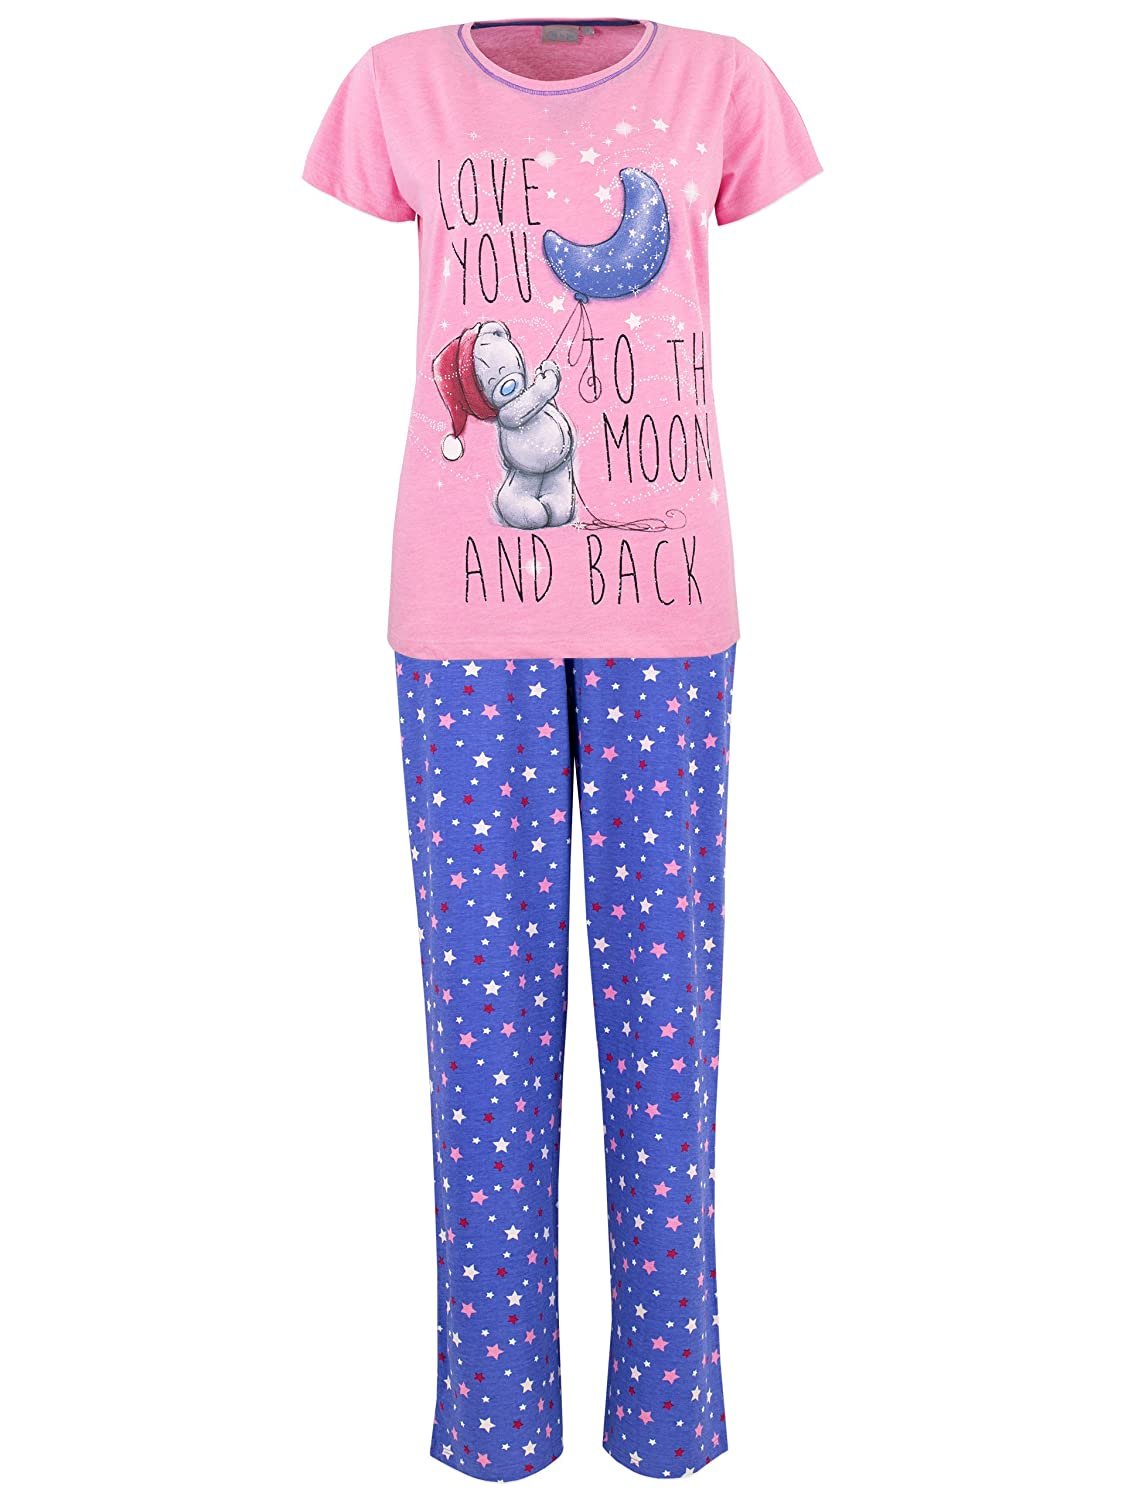 Tatty Teddy Pijama para Mujer Me To You